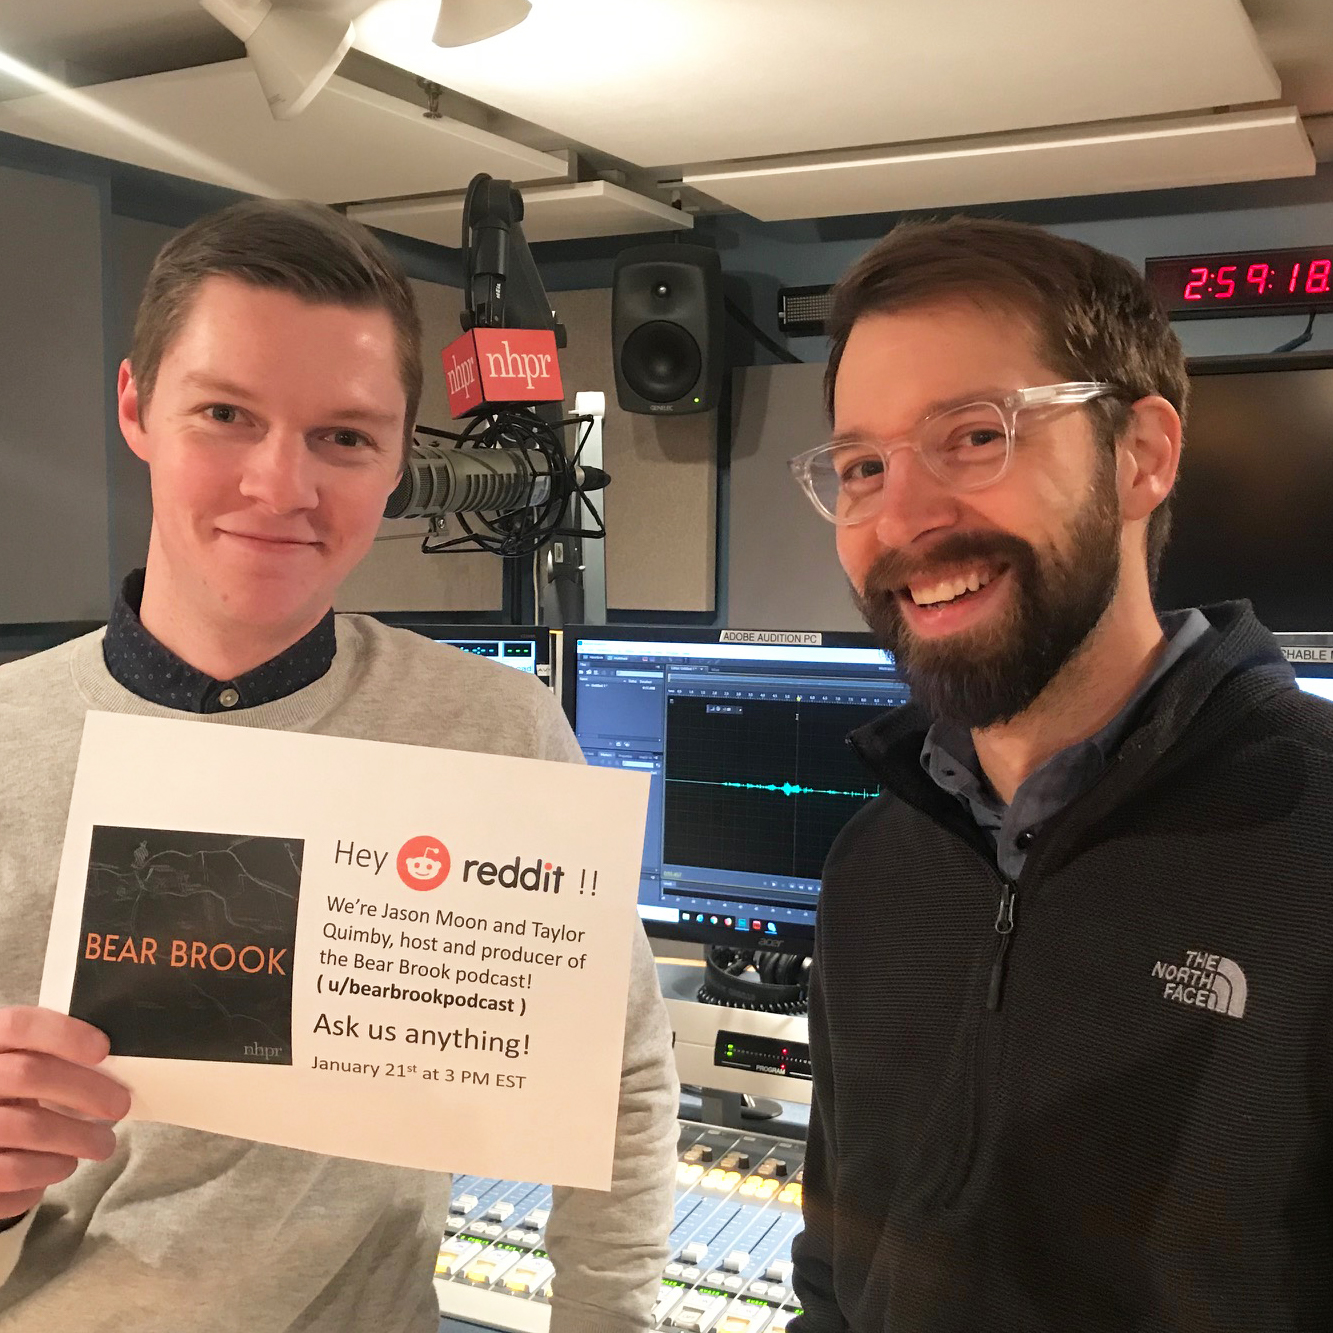 Jason Moon and Taylor Quimby pose for a   Reddit AMA   in January.